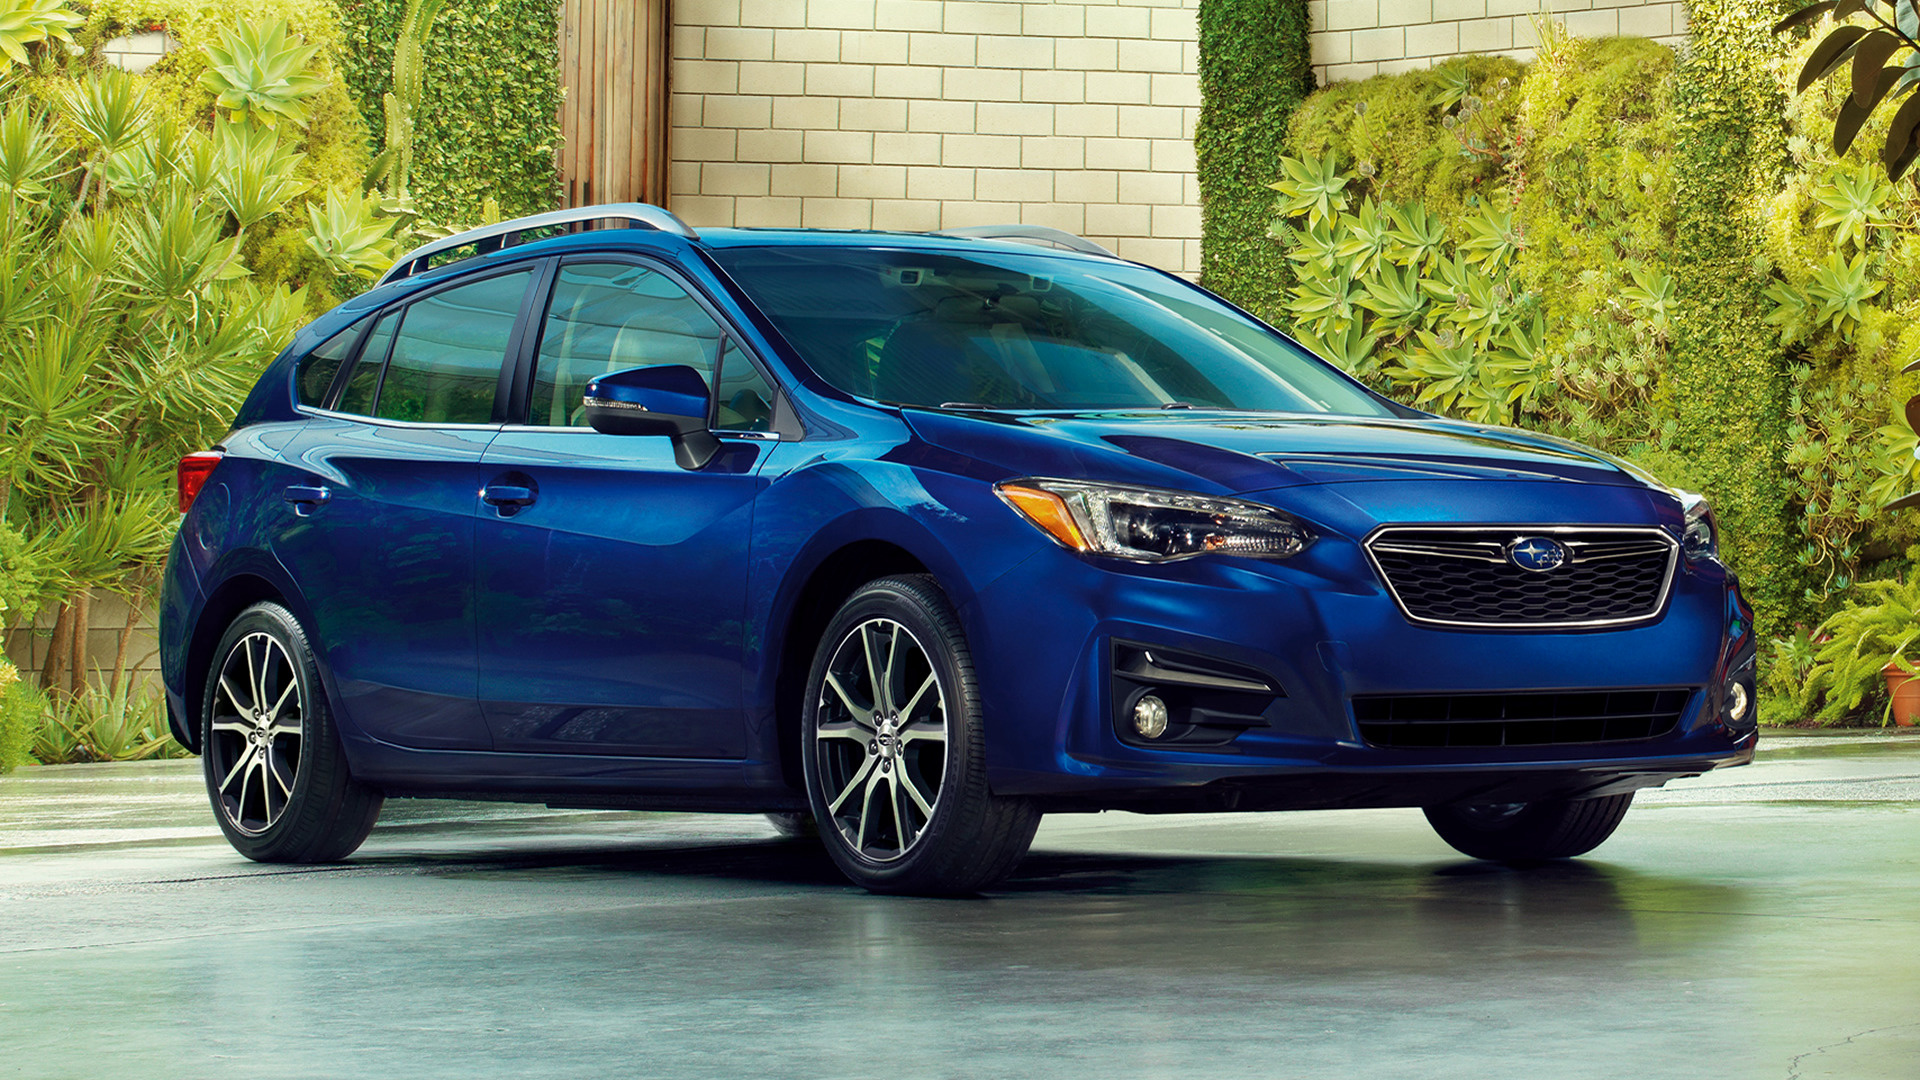 subaru impreza limited 2017 us wallpapers and hd images car pixel. Black Bedroom Furniture Sets. Home Design Ideas